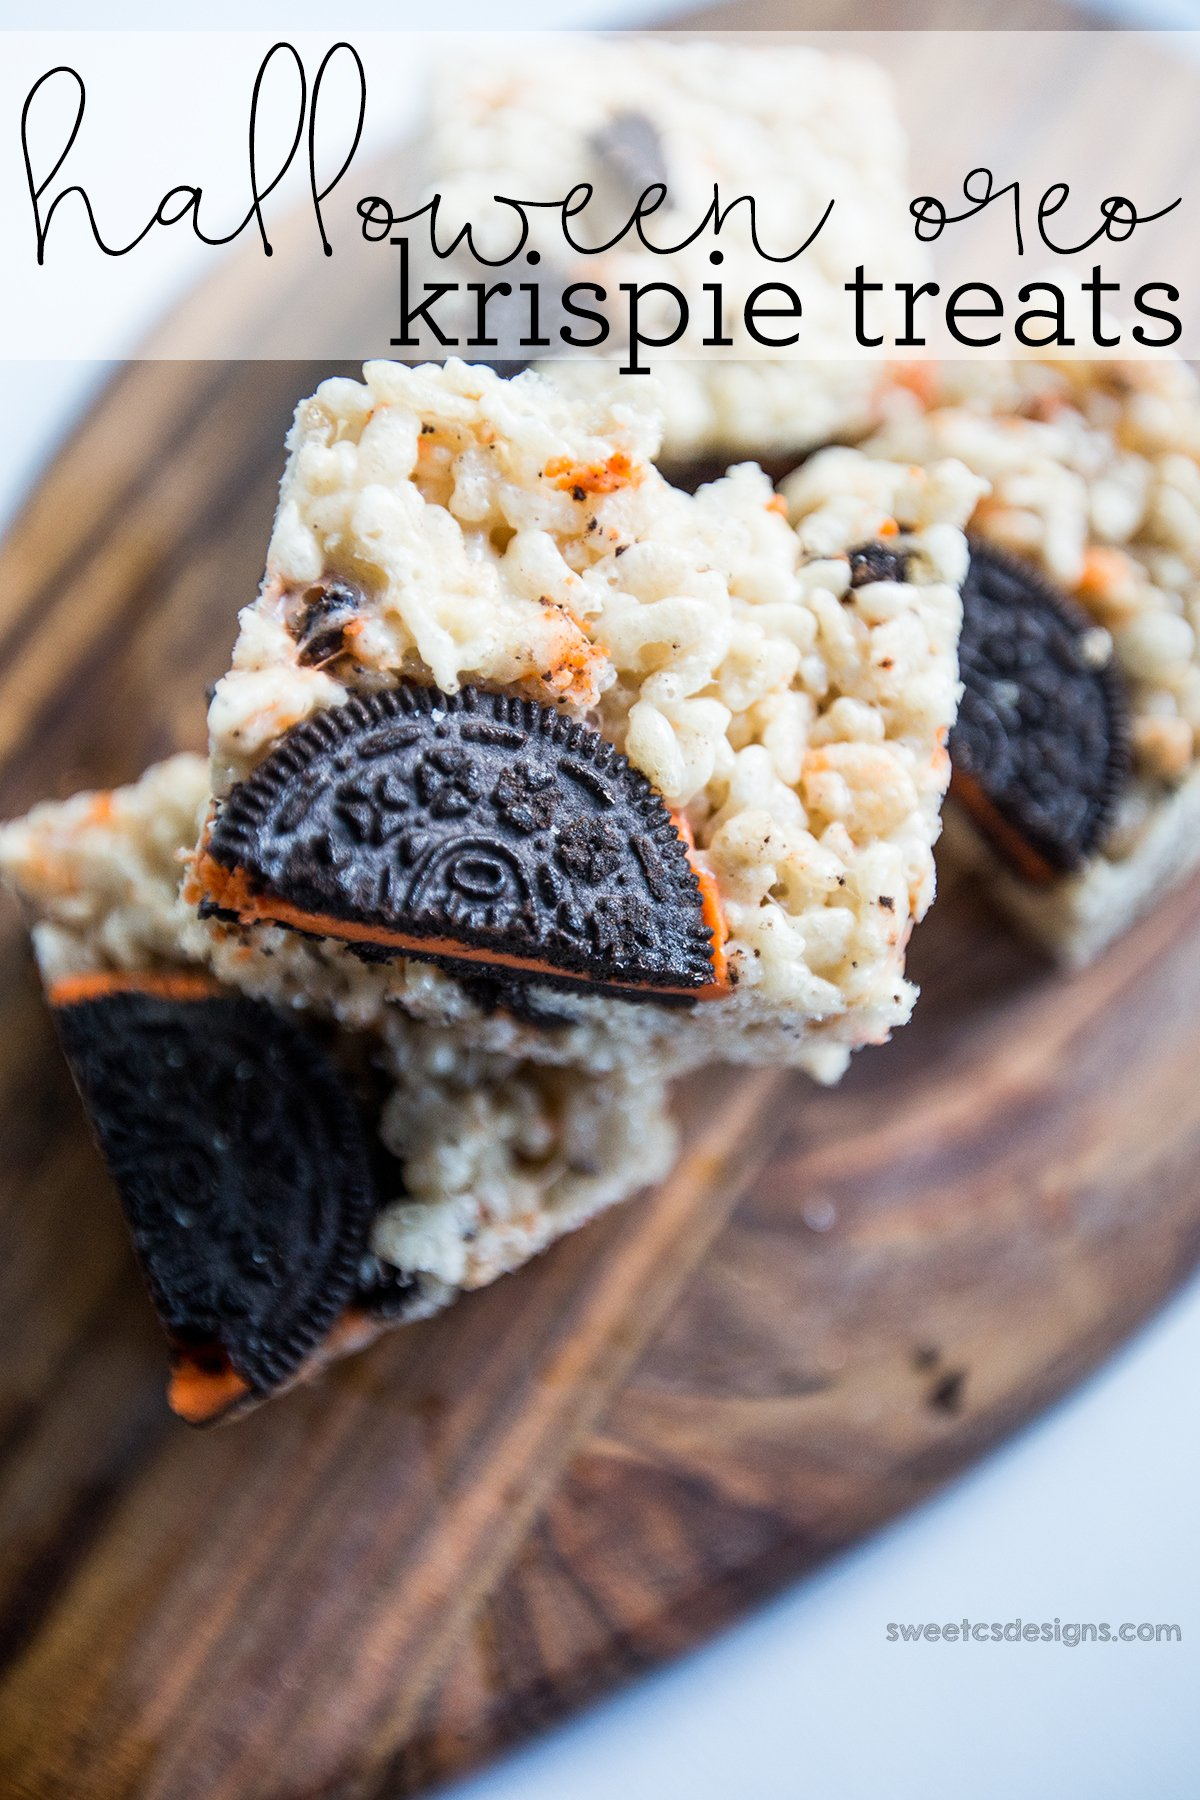 these are so delicious and fun- halloween oreo krispie treats!